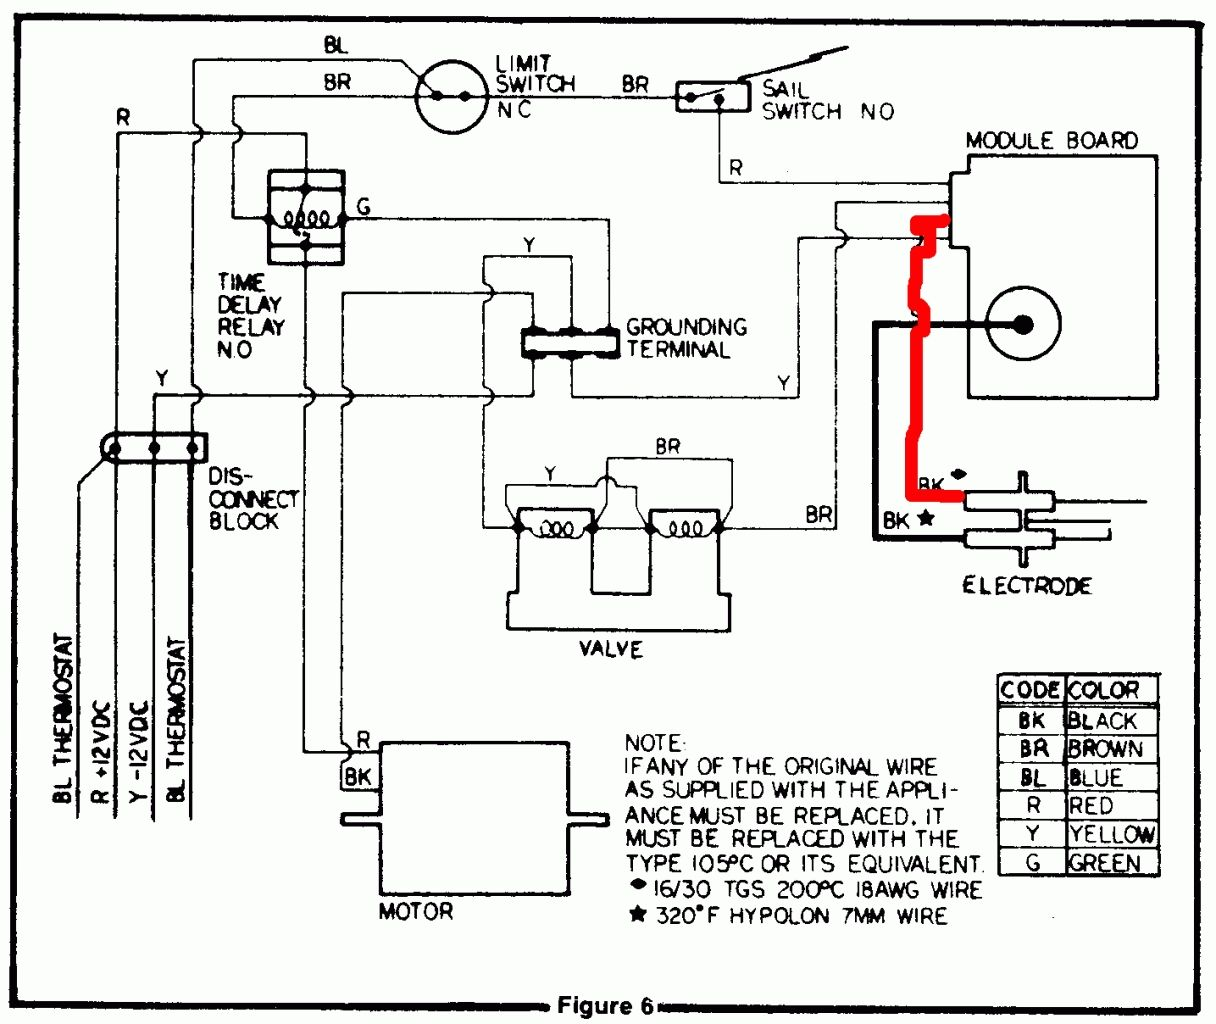 Lennox G16 Wiring Diagram Wiring Diagram And Schematics